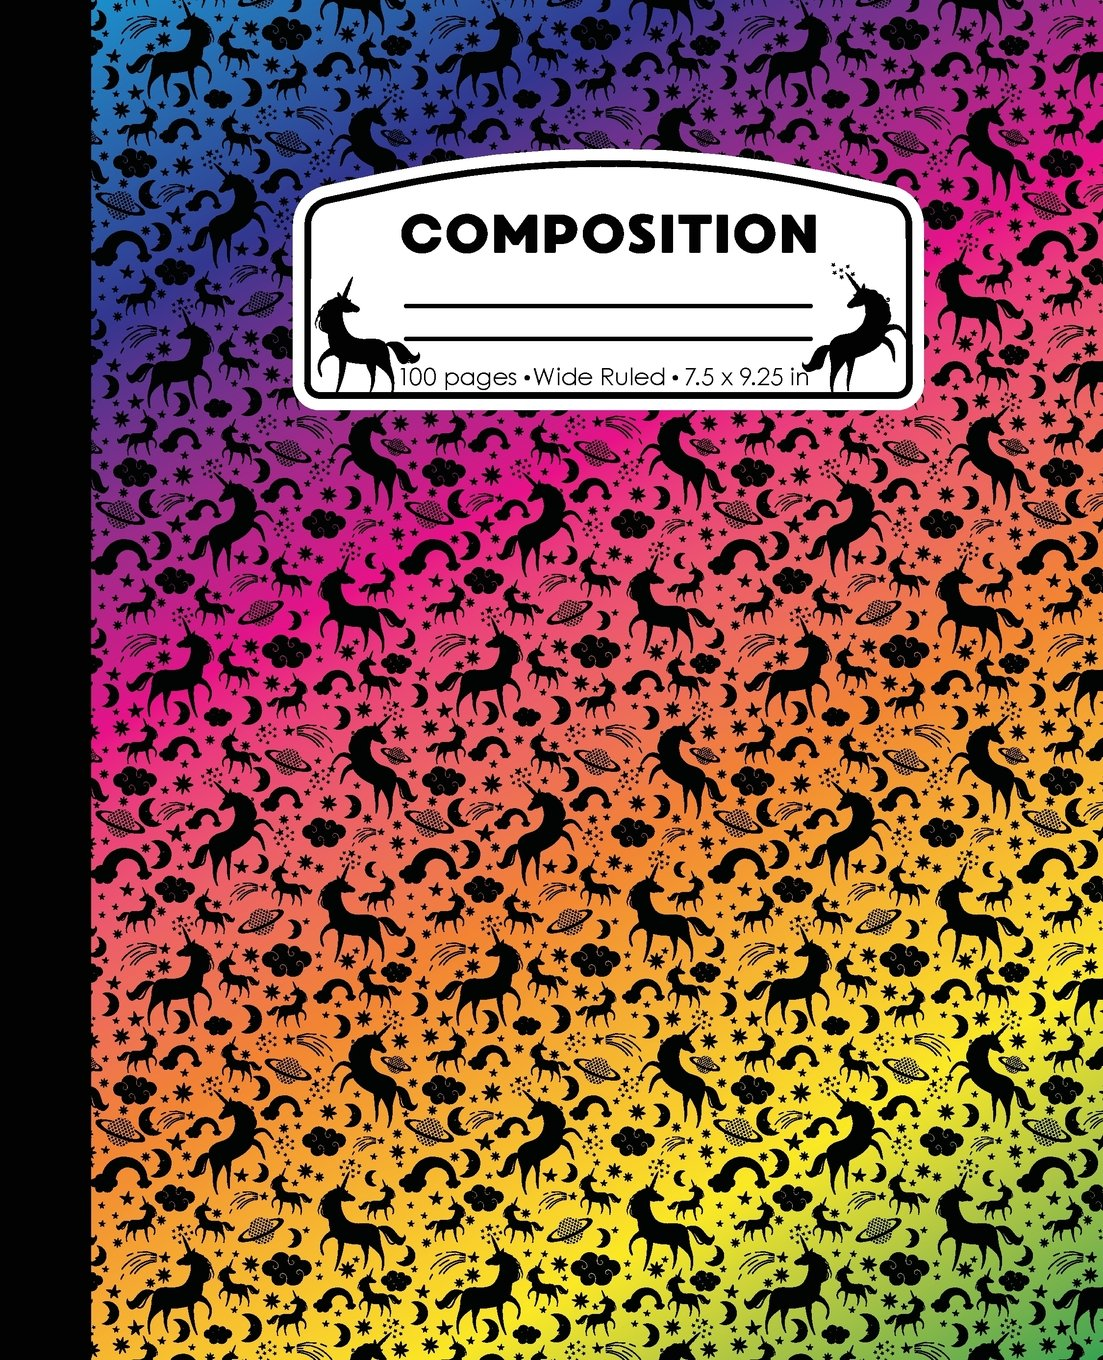 Download Composition: Unicorn Rainbow Marble Composition Notebook Wide Ruled 7.5 x 9.25 in, 100 pages book for girls, kids, school, students and teachers (Unicorn Marble Composition Books) PDF